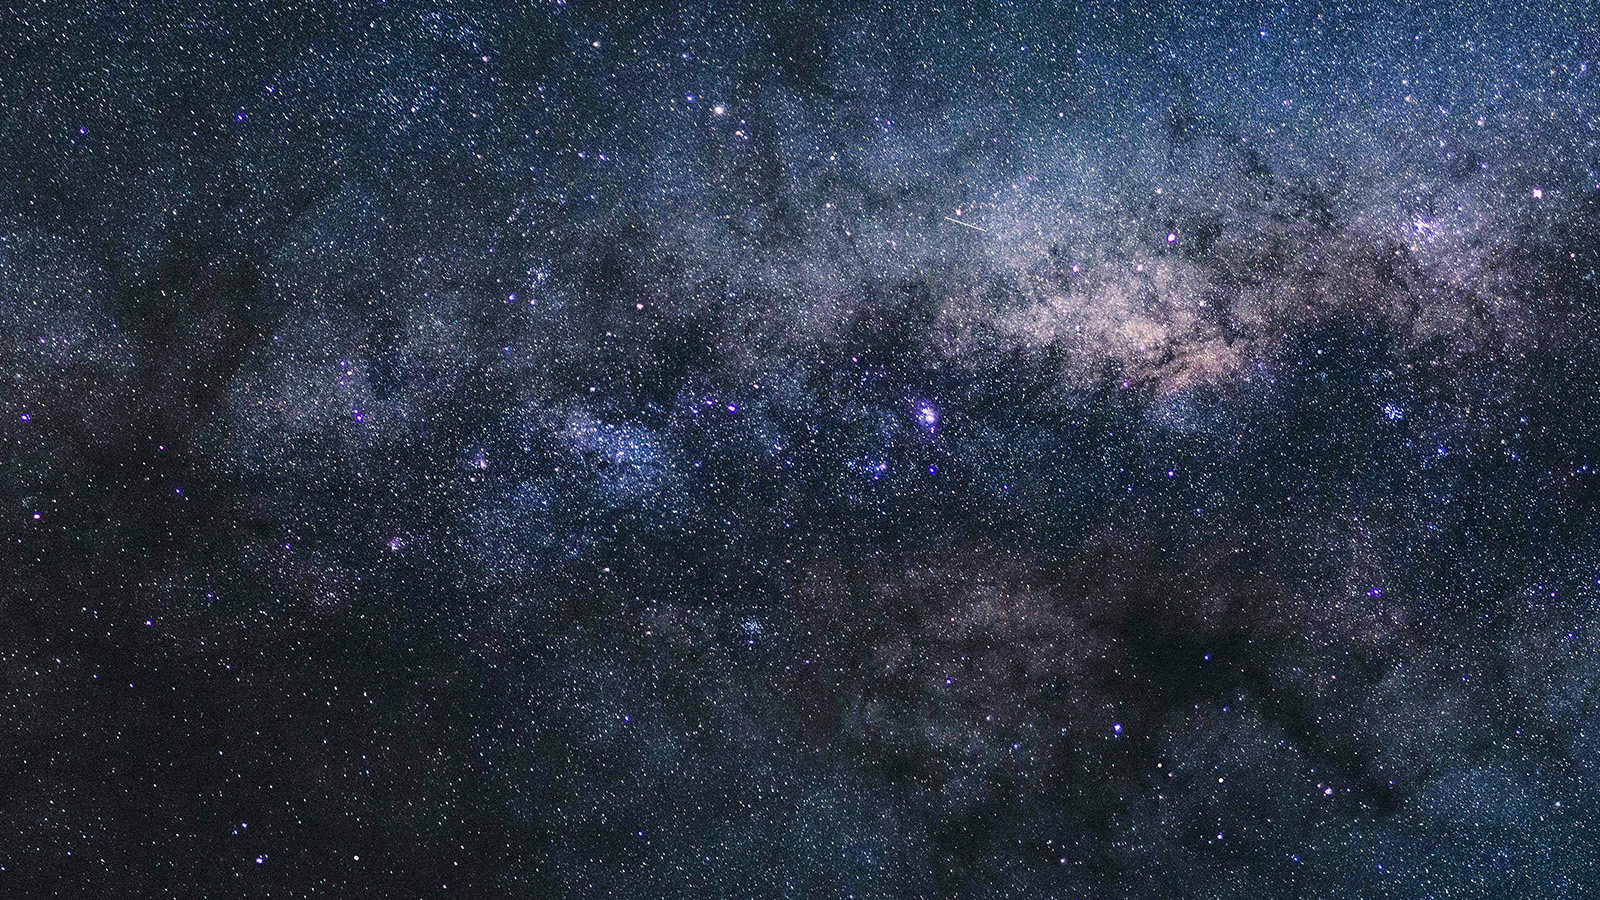 nm77-sky-space-star-night-fantastic-summer-dark-wallpaper